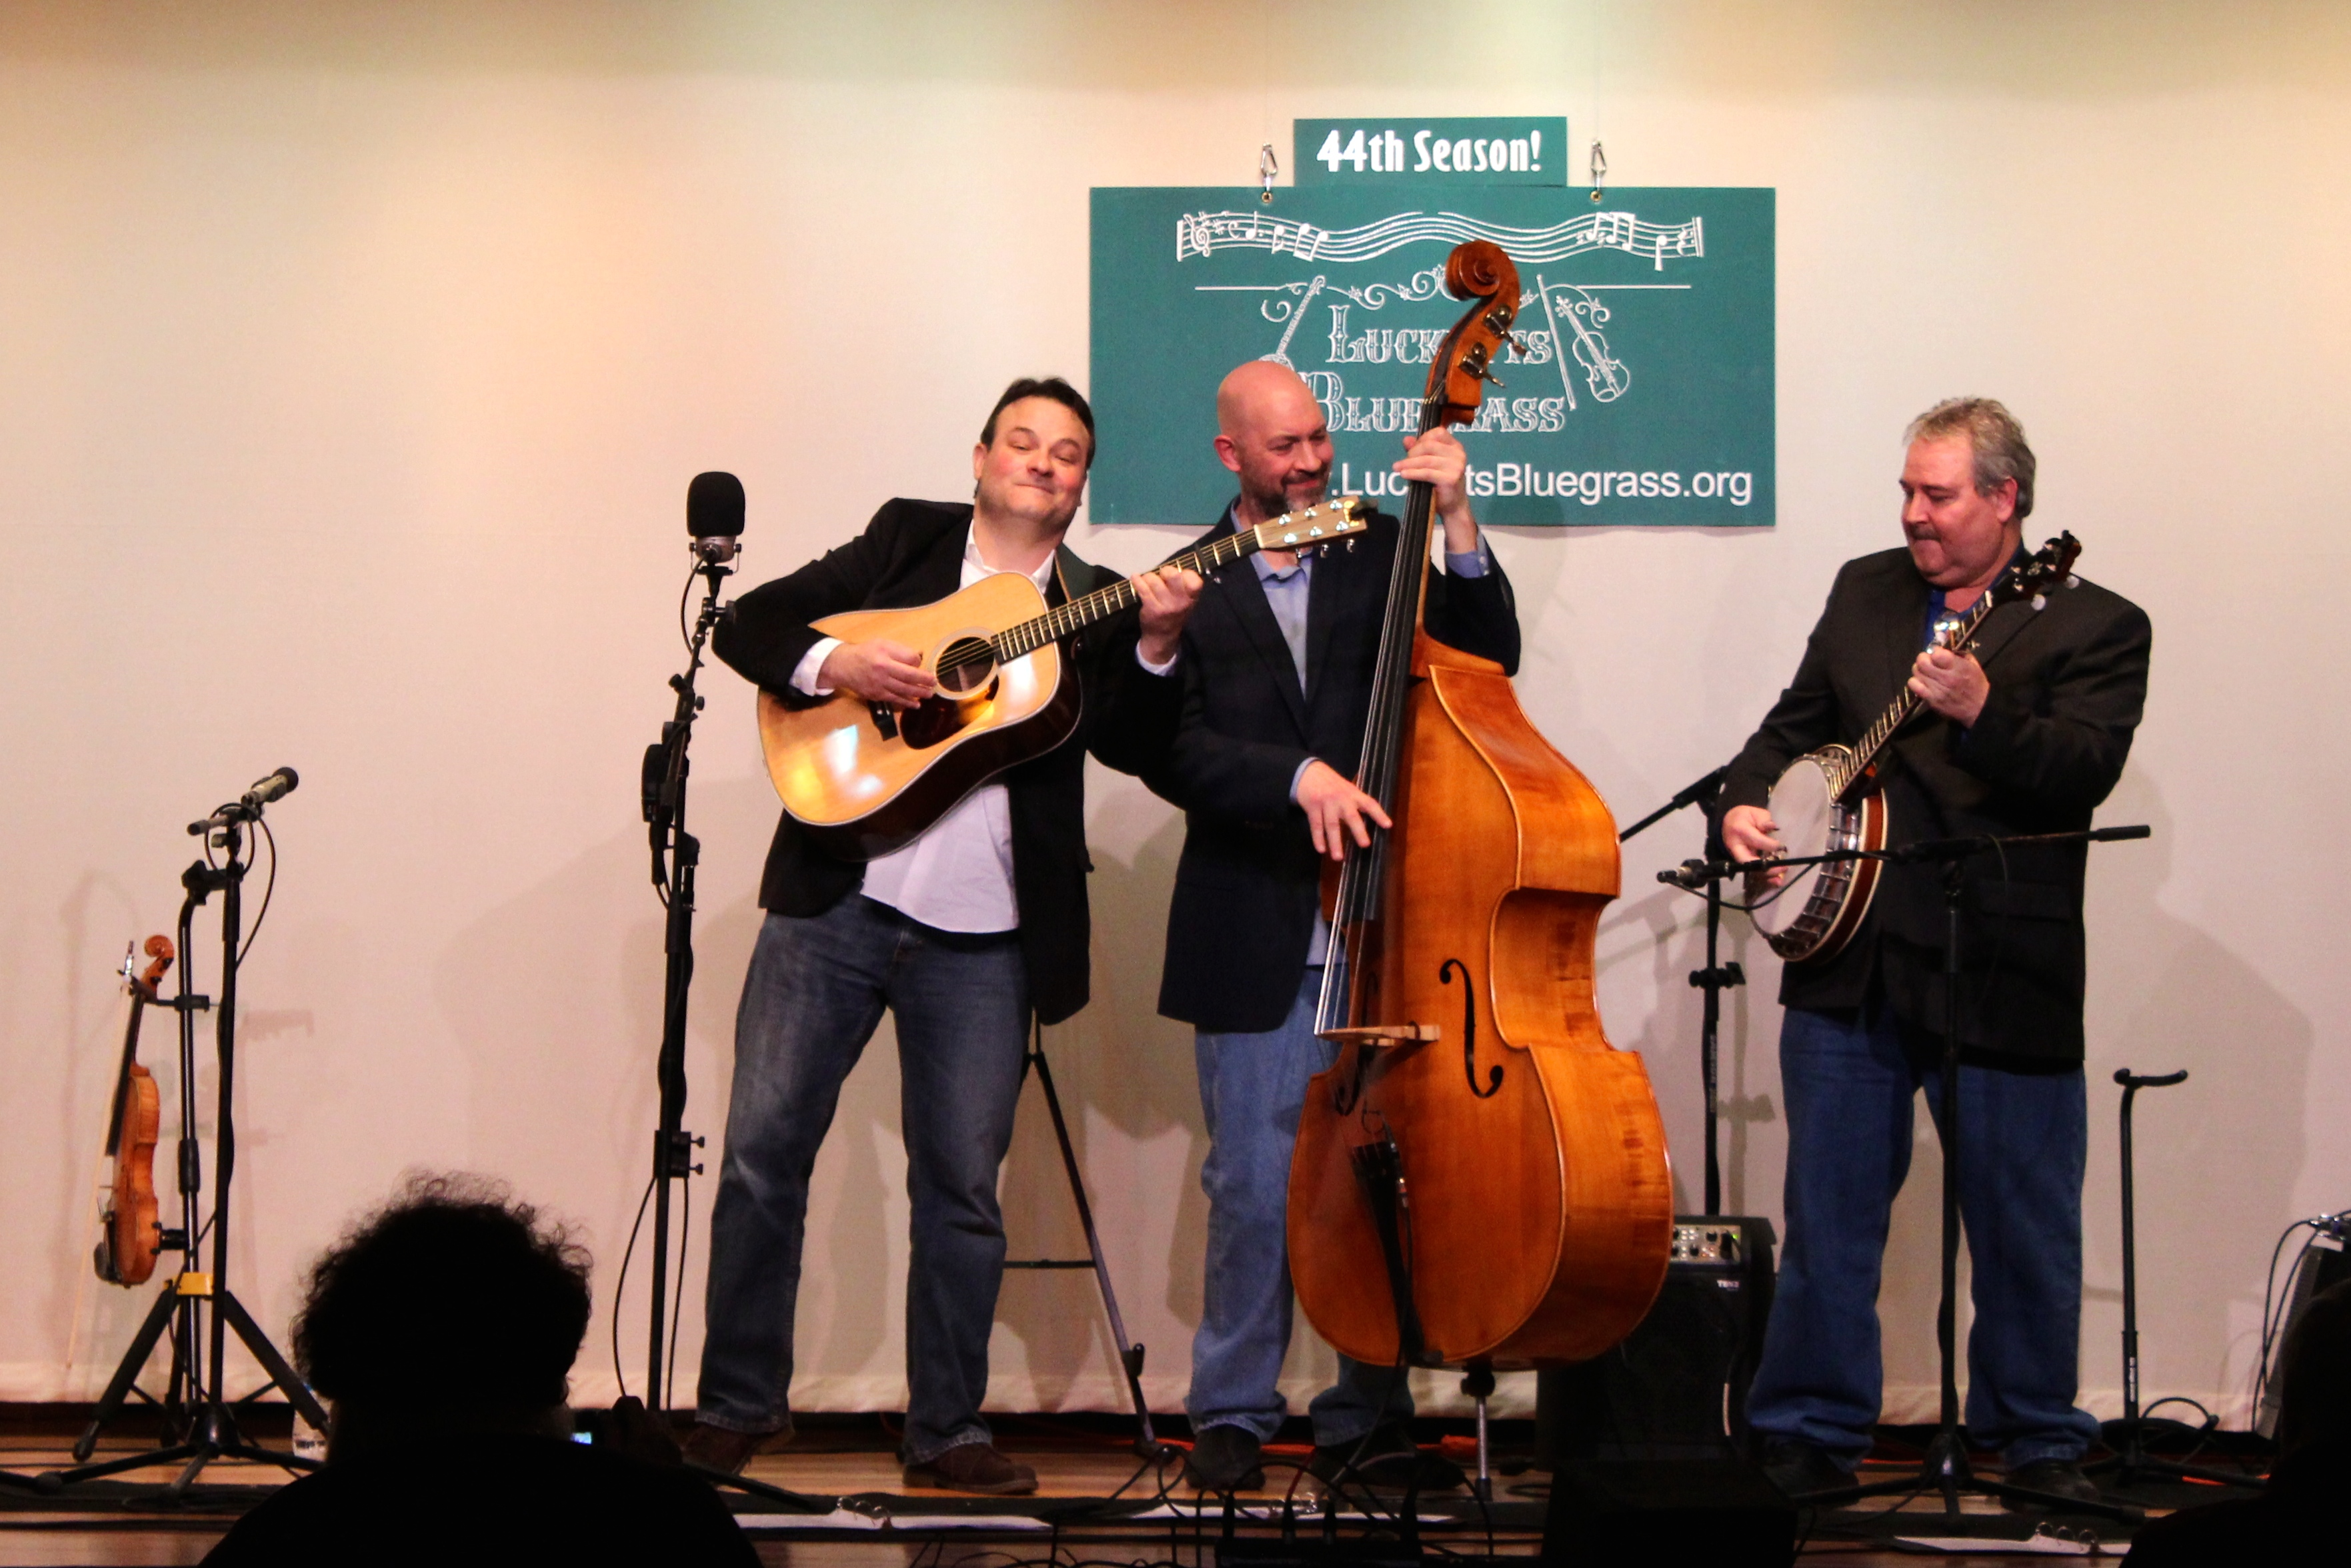 """""""The Mike Mitchell Trio won over the Lucketts Bluegrass crowd with their fresh take on traditional American music.  Whether performing original tunes, bluegrass classics, or fiddle tunes, they did so with joy and skilled musicianship."""" ~ Karen Capell Lucketts Bluegrass"""